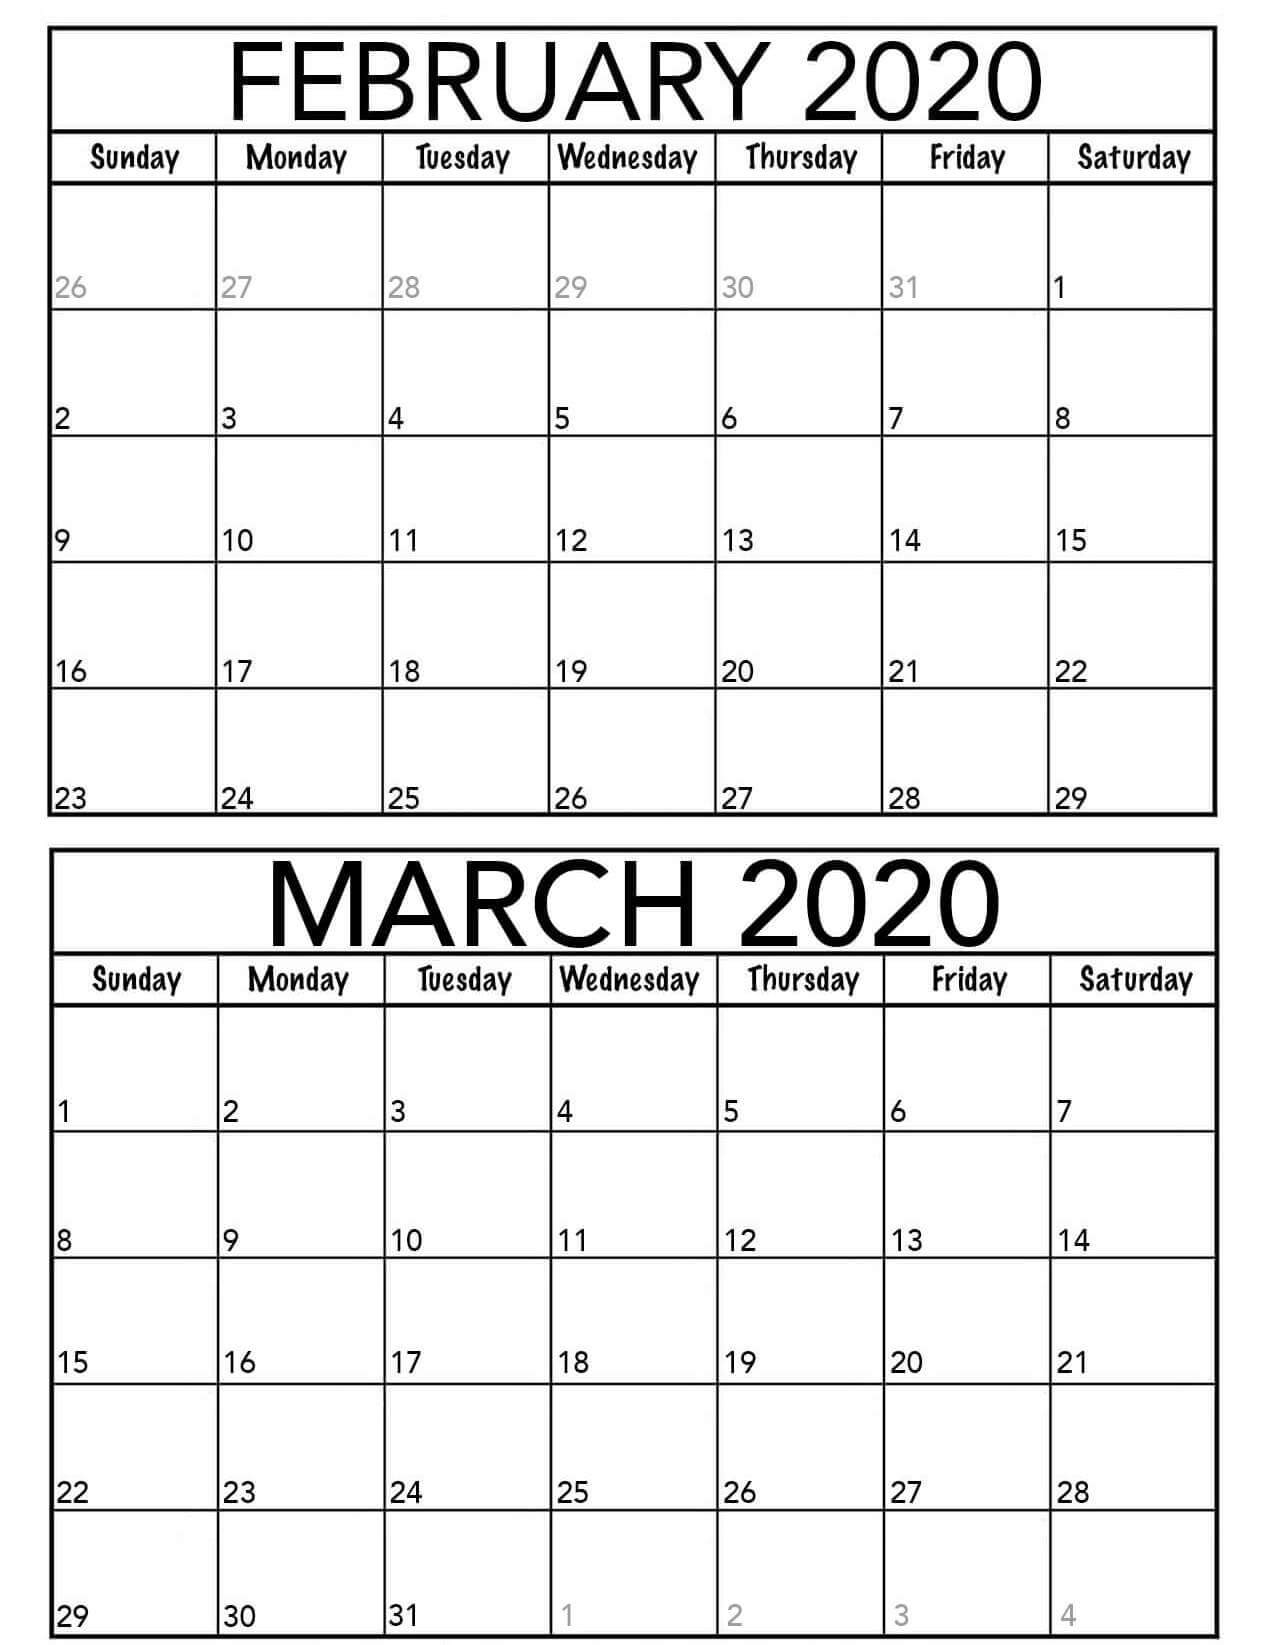 February March 2020 Calendar Template  2019 Calendars For pertaining to Feb And March 2020